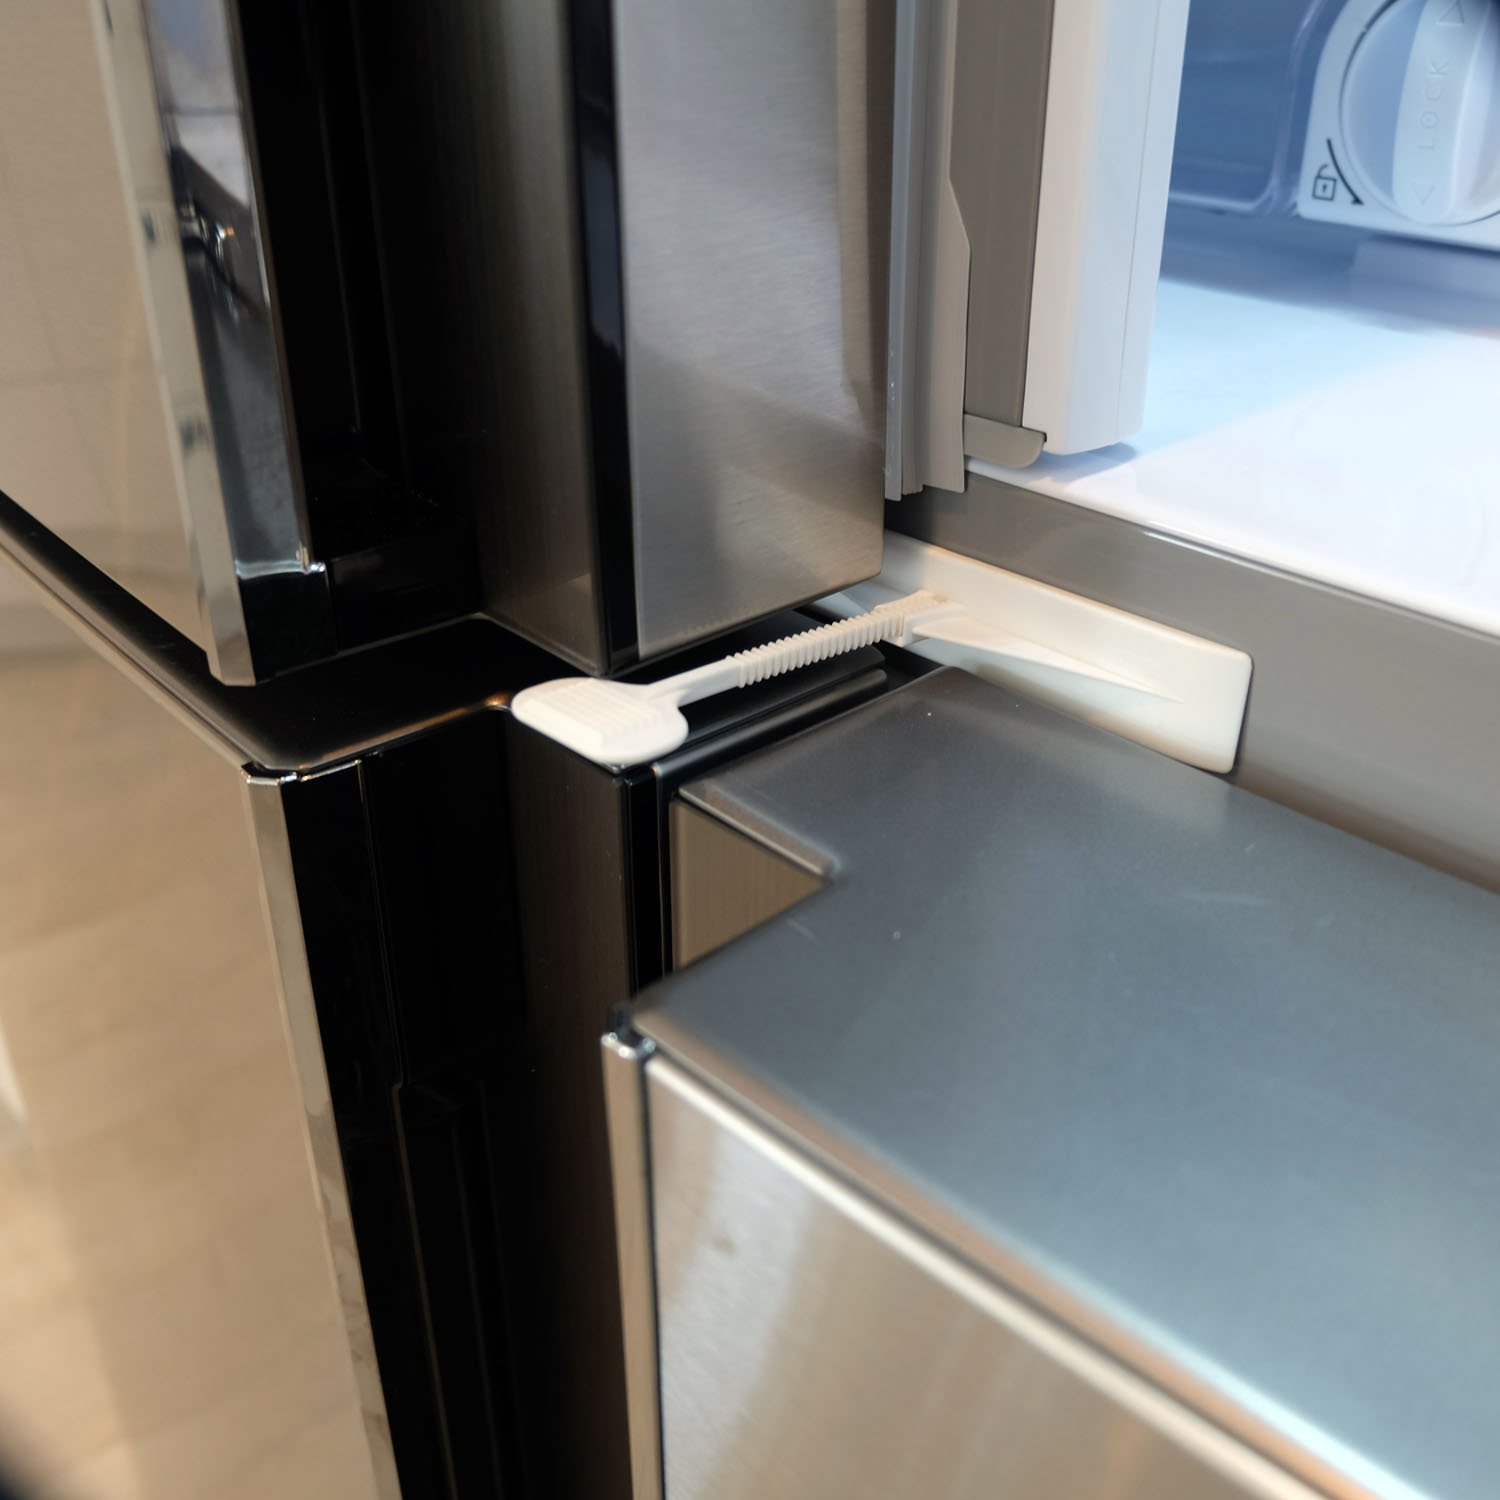 Baby Proofing Doesn/'t Have to be Ugly Easy One Handed Operation QDOS ADHESIVE FRIDGE//FREEZER LOCK Modern Design Refrigerator Lock White Patented ZeroPinch Design